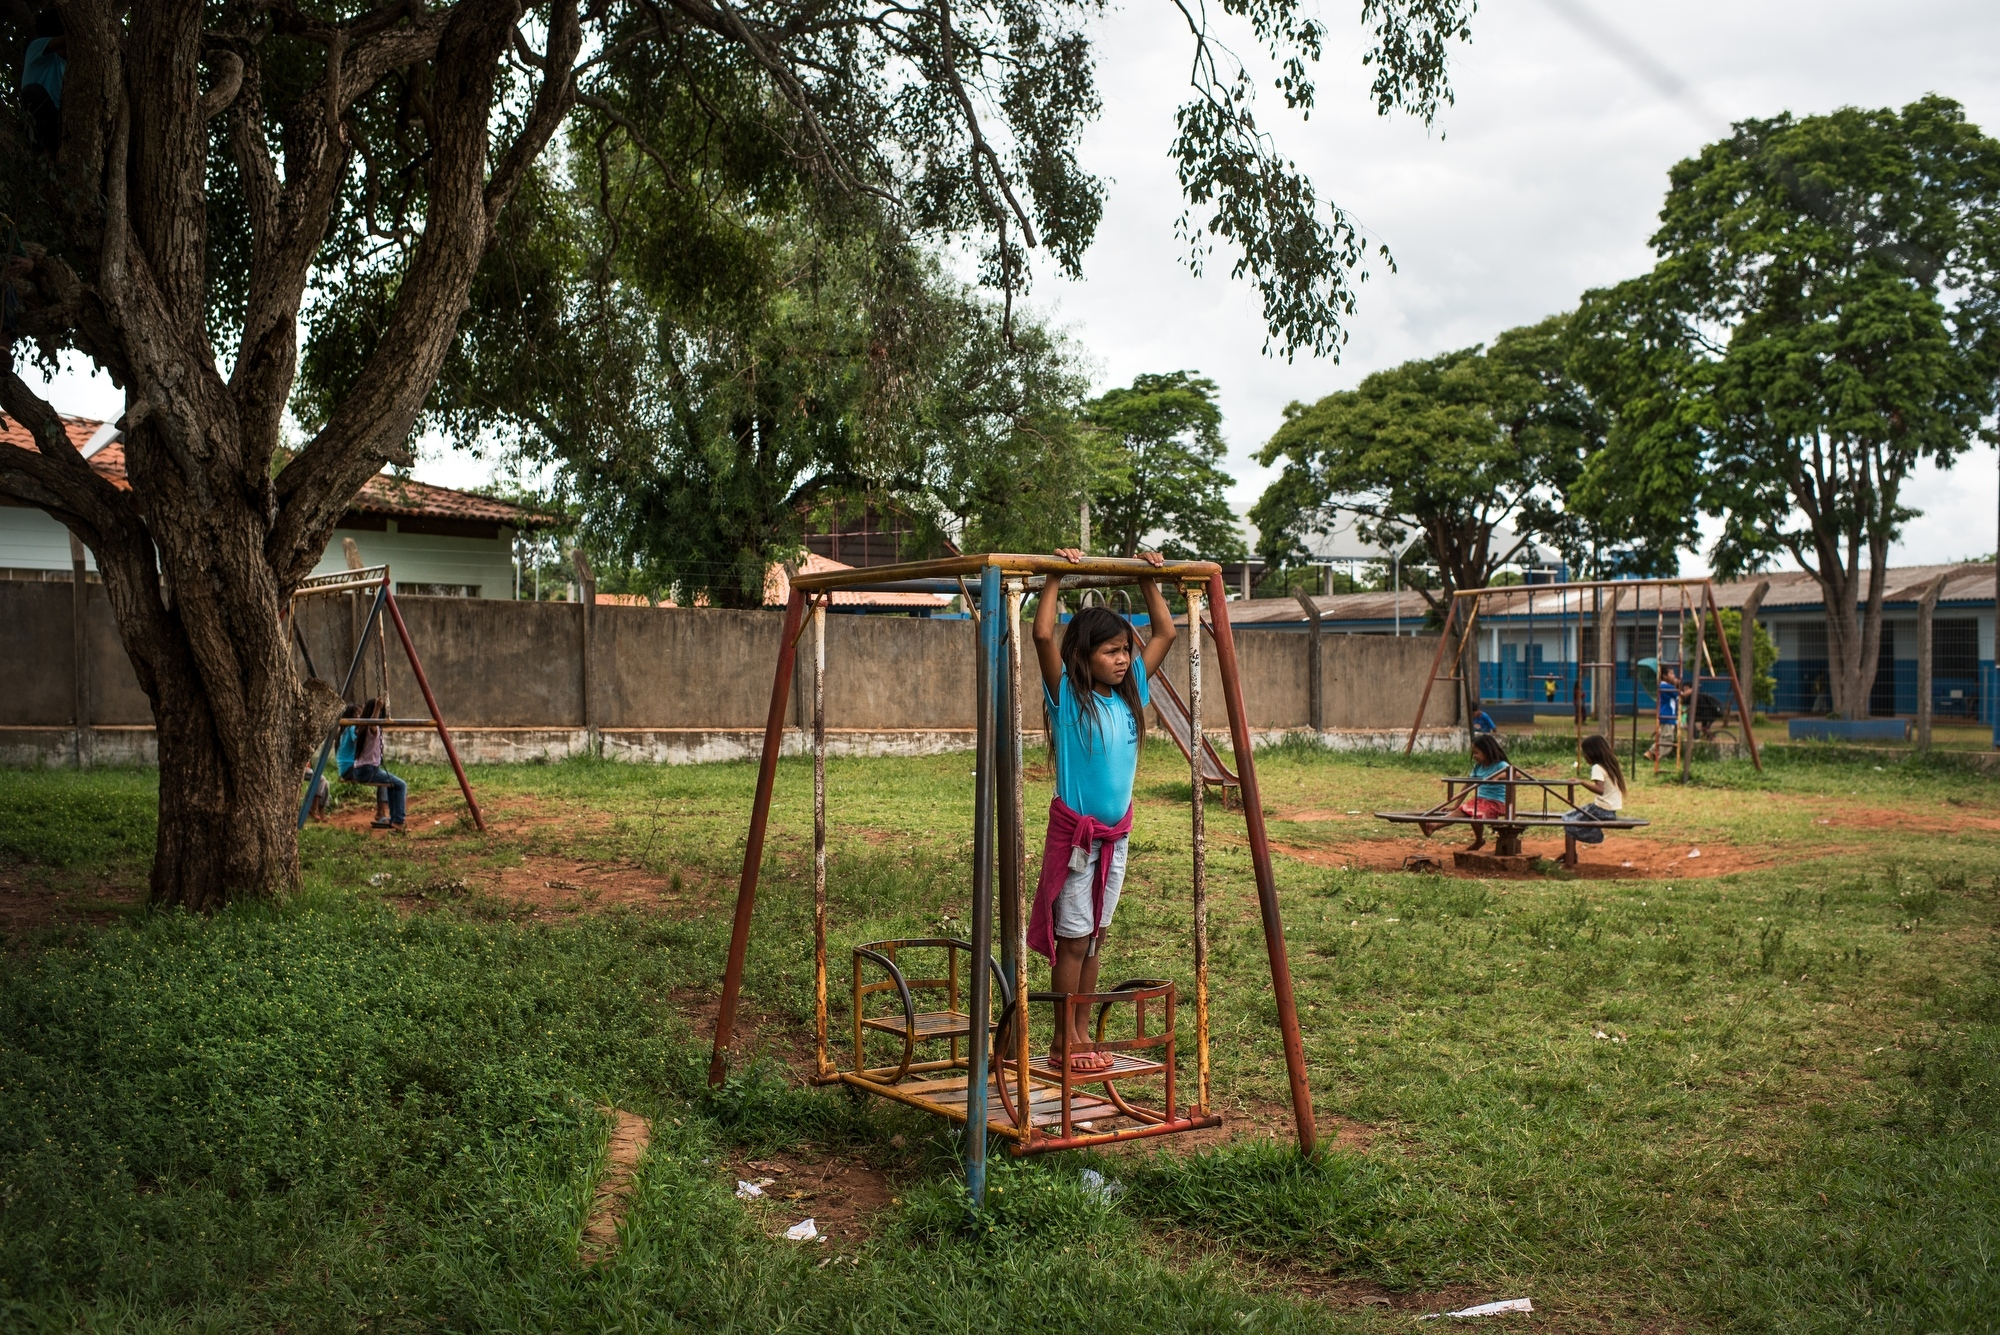 November 29, 2016.  Children play in a schoolyard in the Guarani-Kaiowa Amambai Indigenous Reserve in Matto Grosso Du Sul, Brazil.